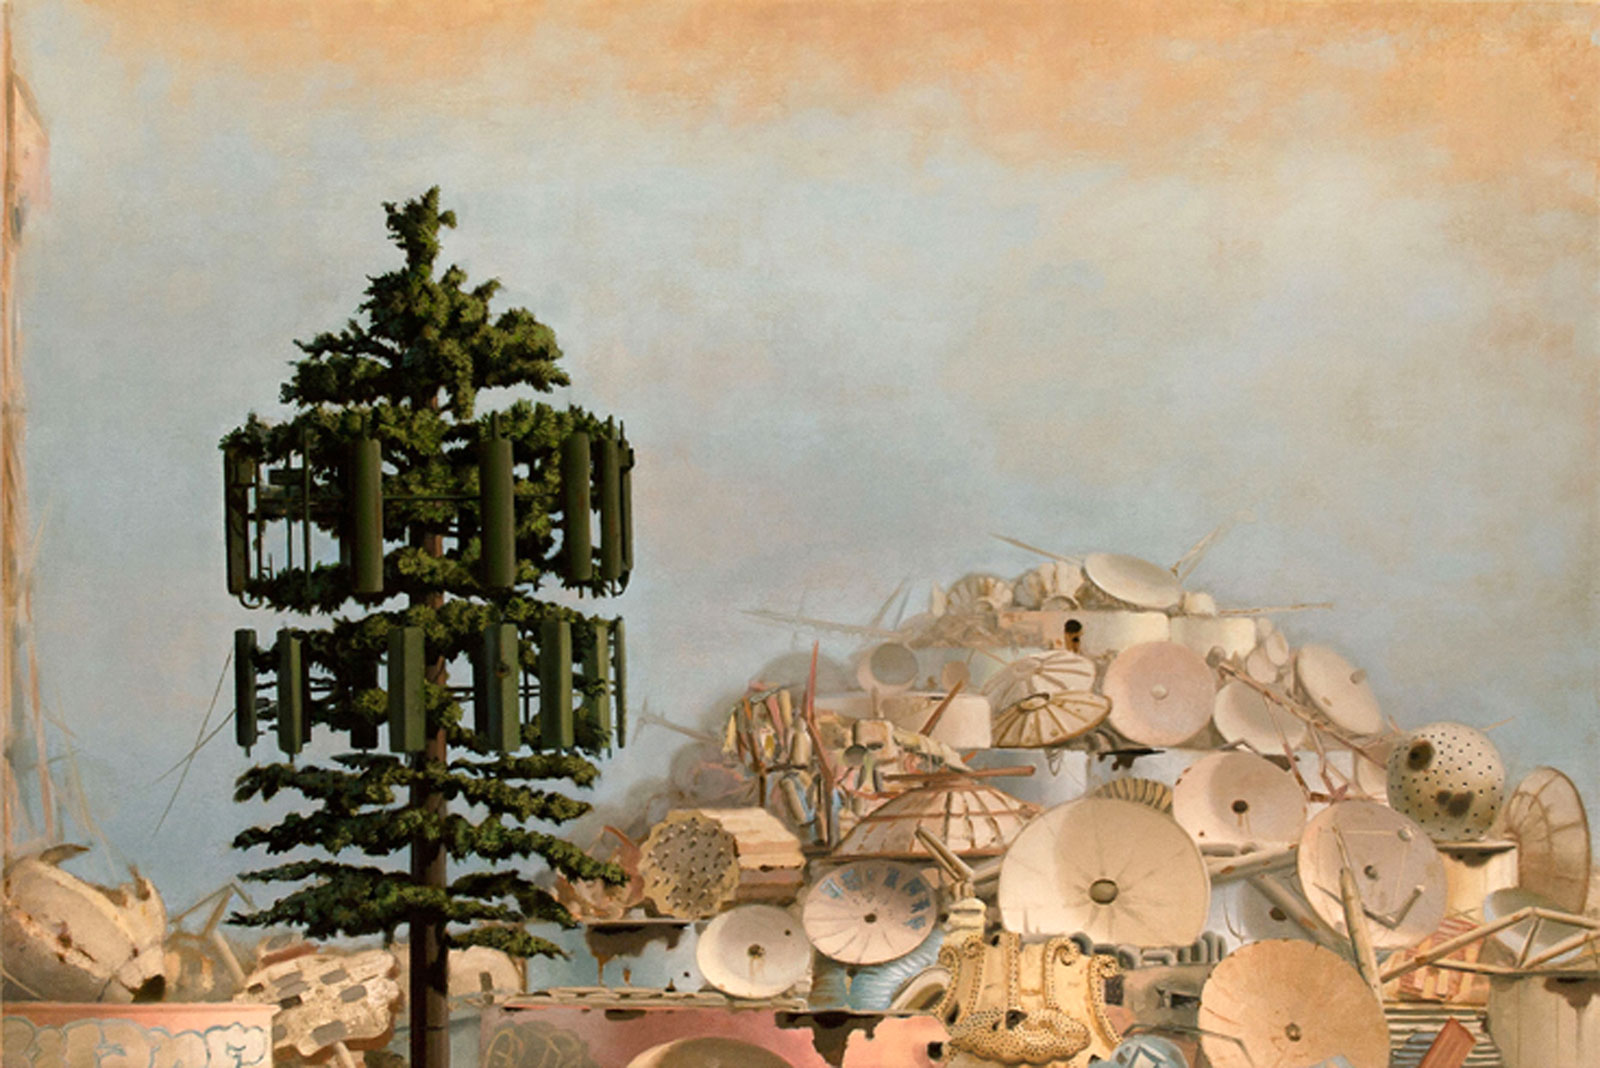 satellite dishes and celltower resembling a pine tree